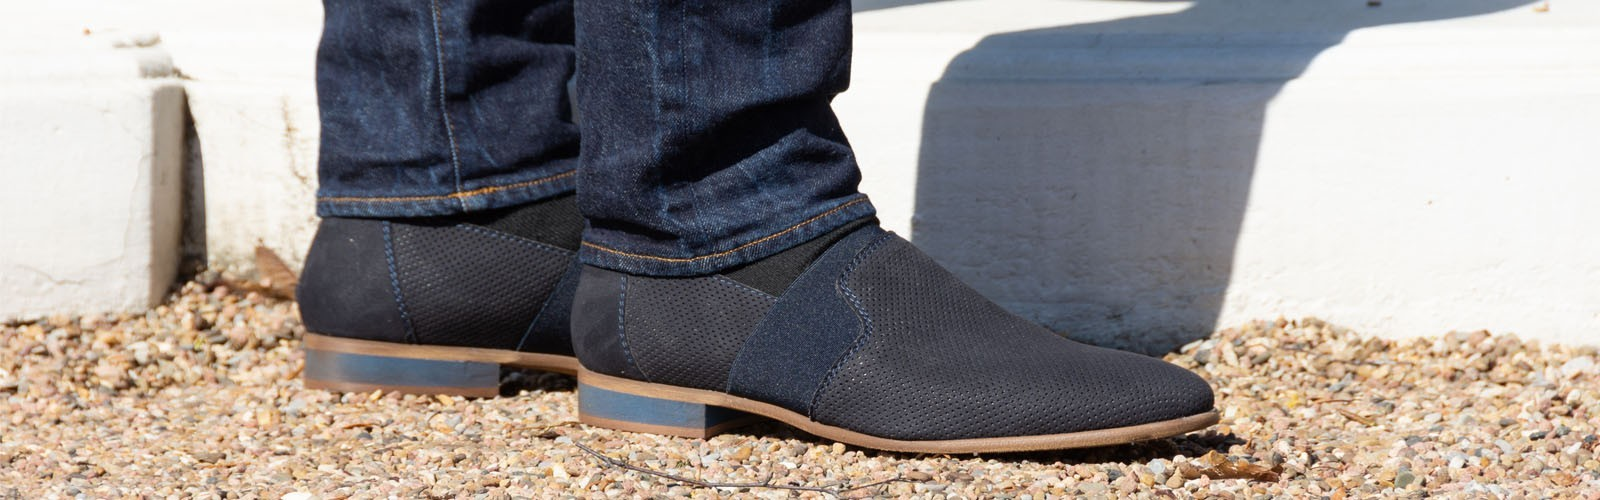 Vegan men's shoes for leisure time